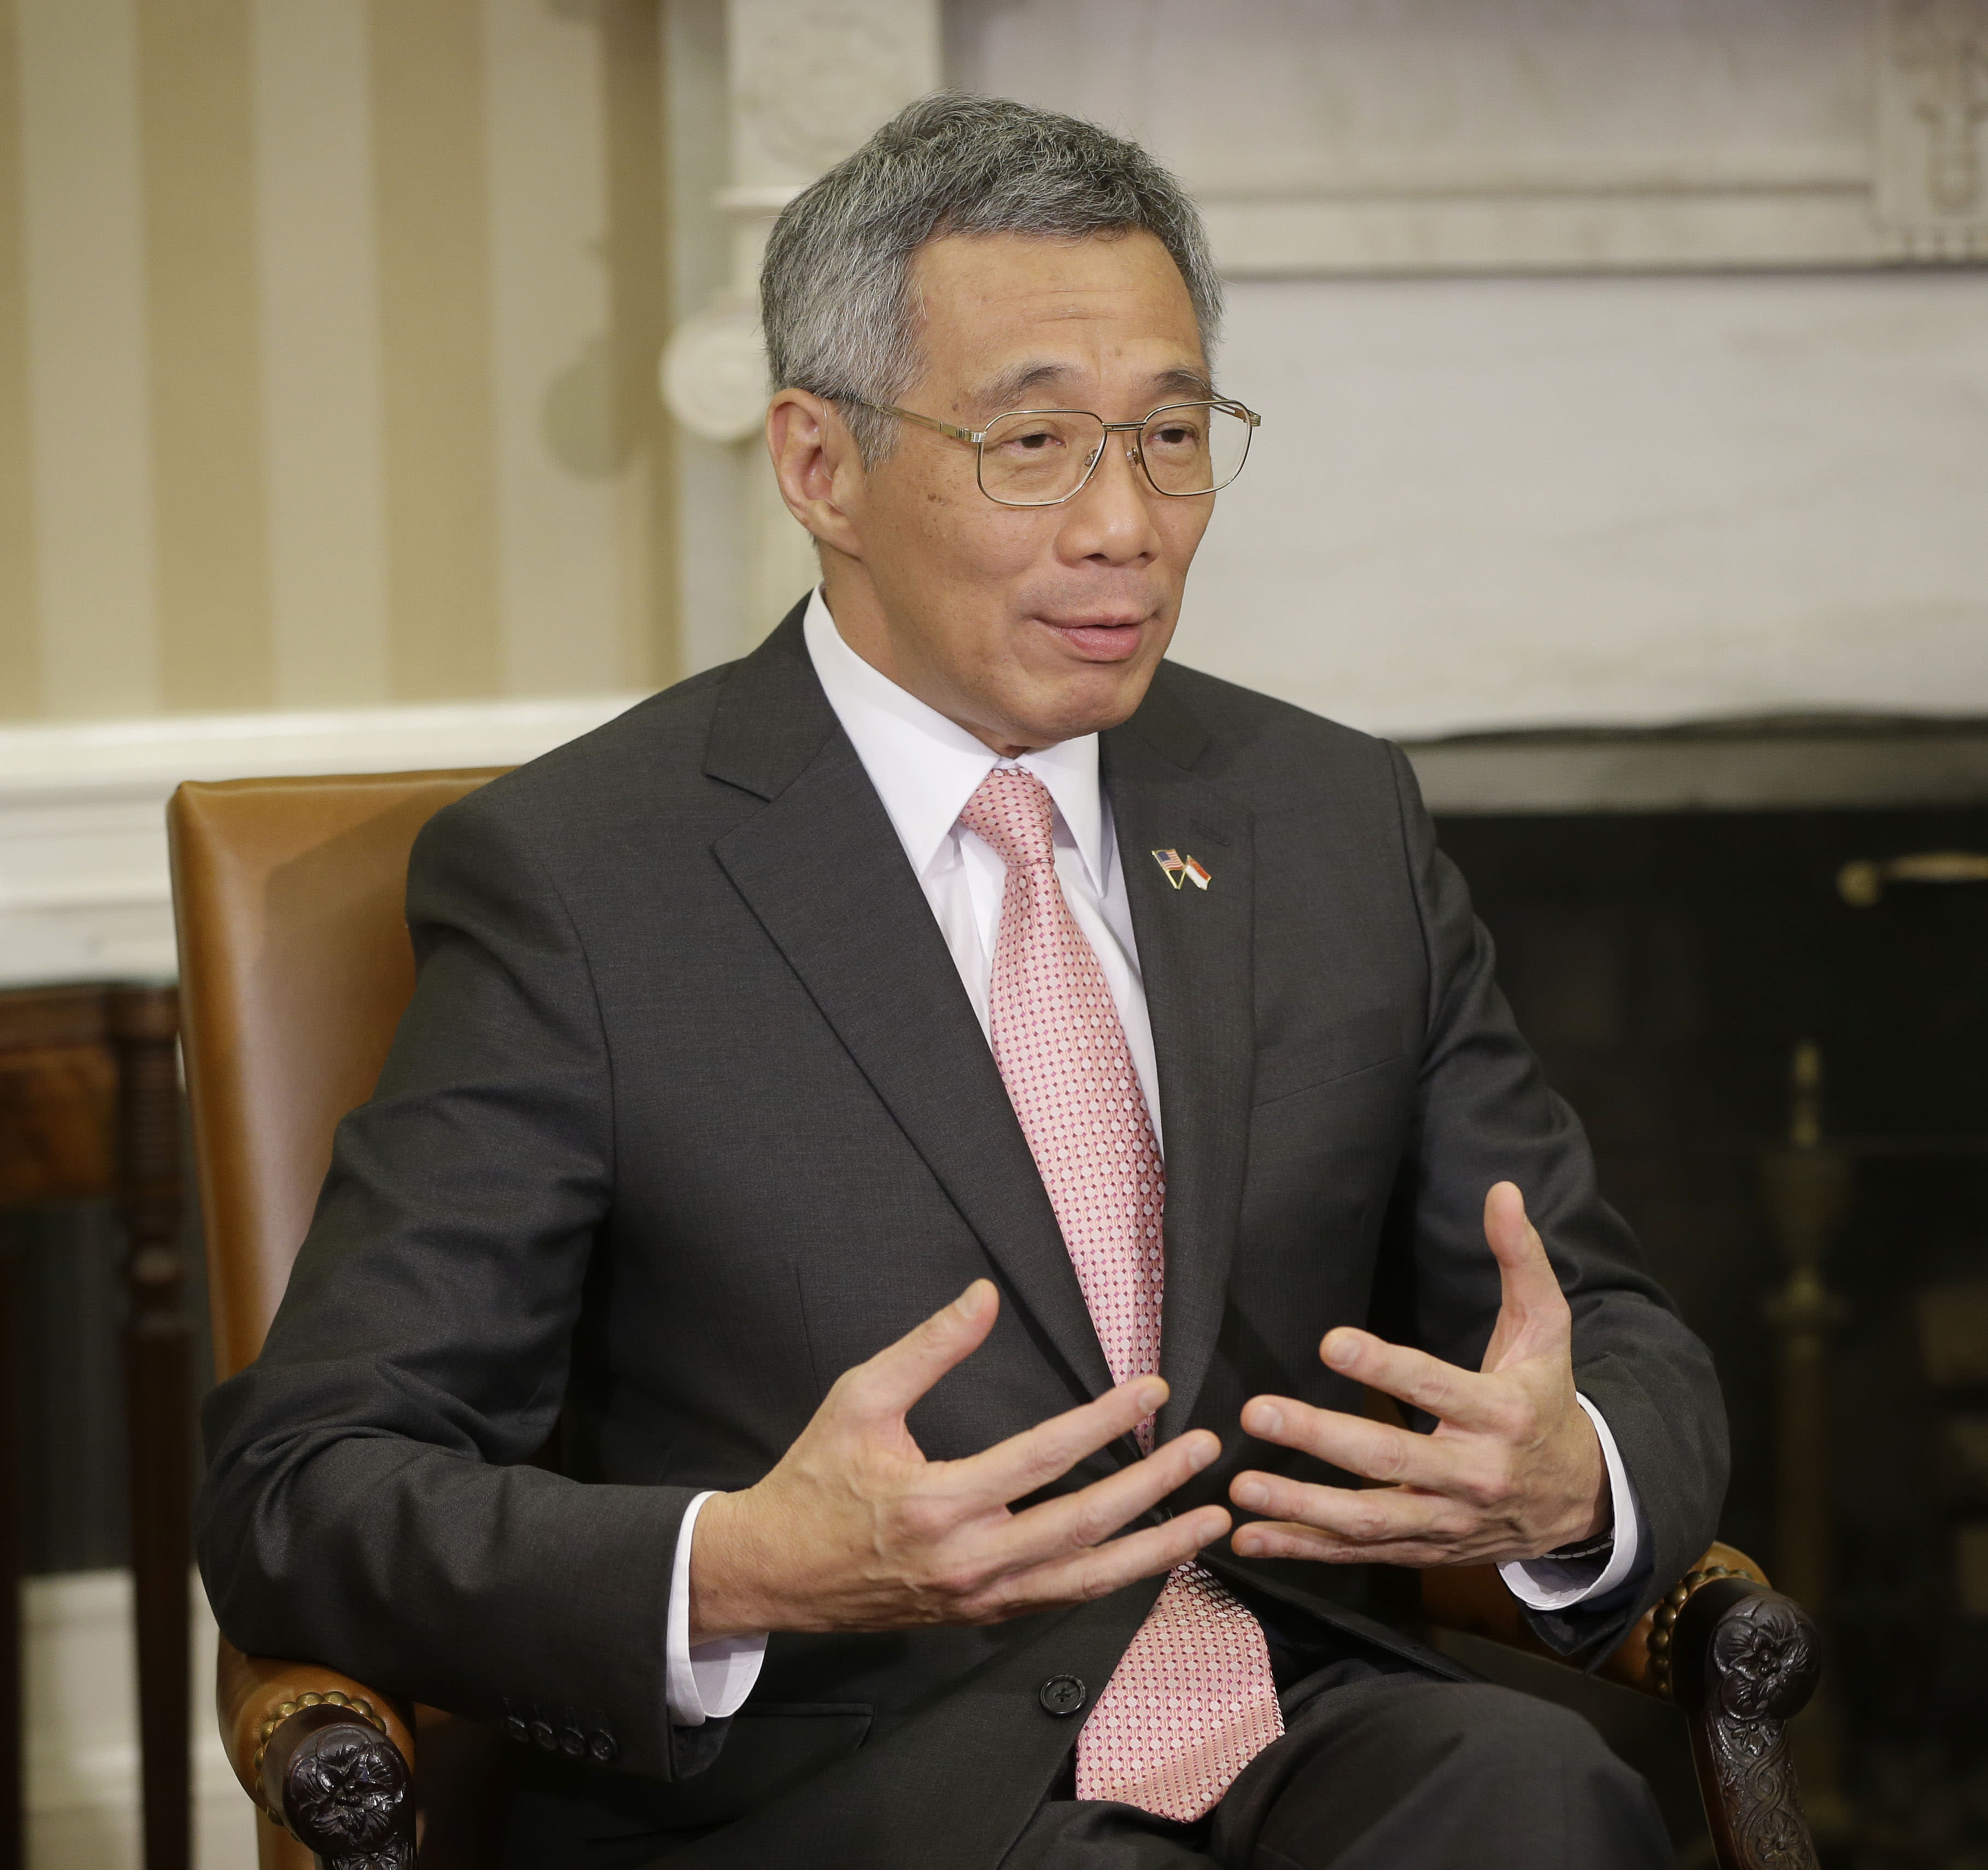 Singapore Prime Minister Lee Hsien Loong gestures during his meeting with President Barack Obama in the Oval Office of the White House in Washington, Tuesday, April, 2, 2013. (AP Photo/Pablo Martinez Monsivais)